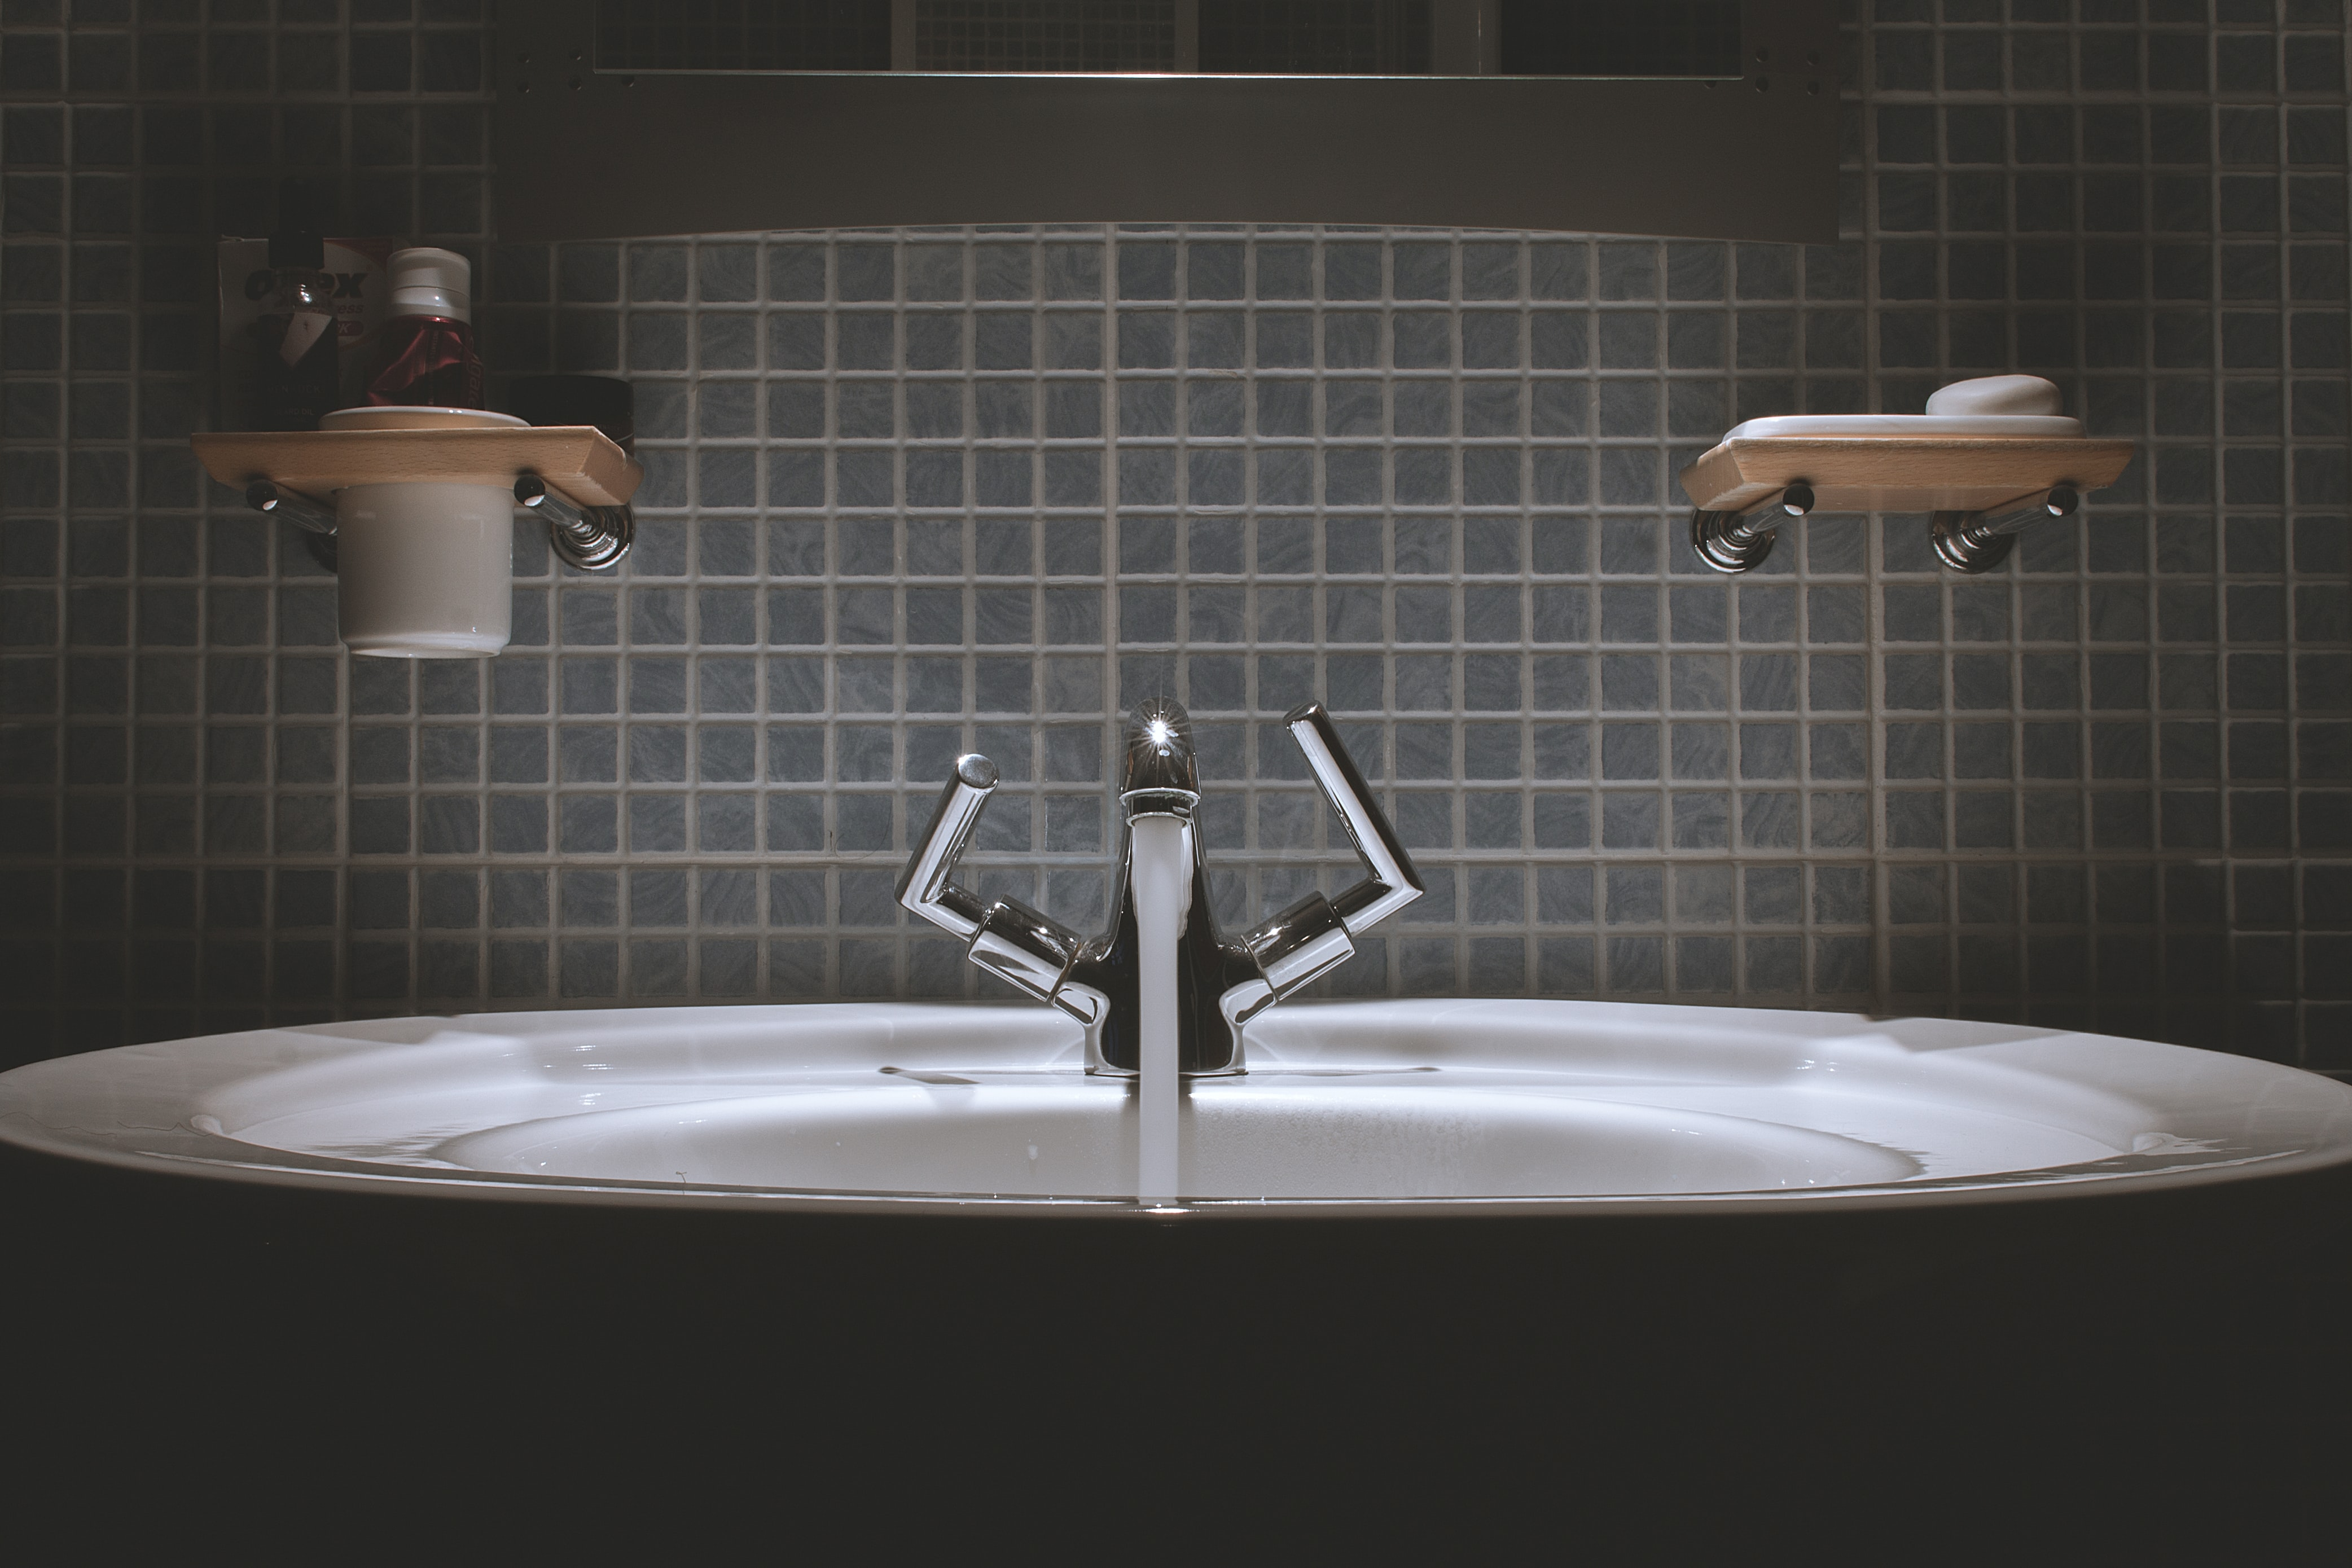 What You Should Know About Plumbers This Year